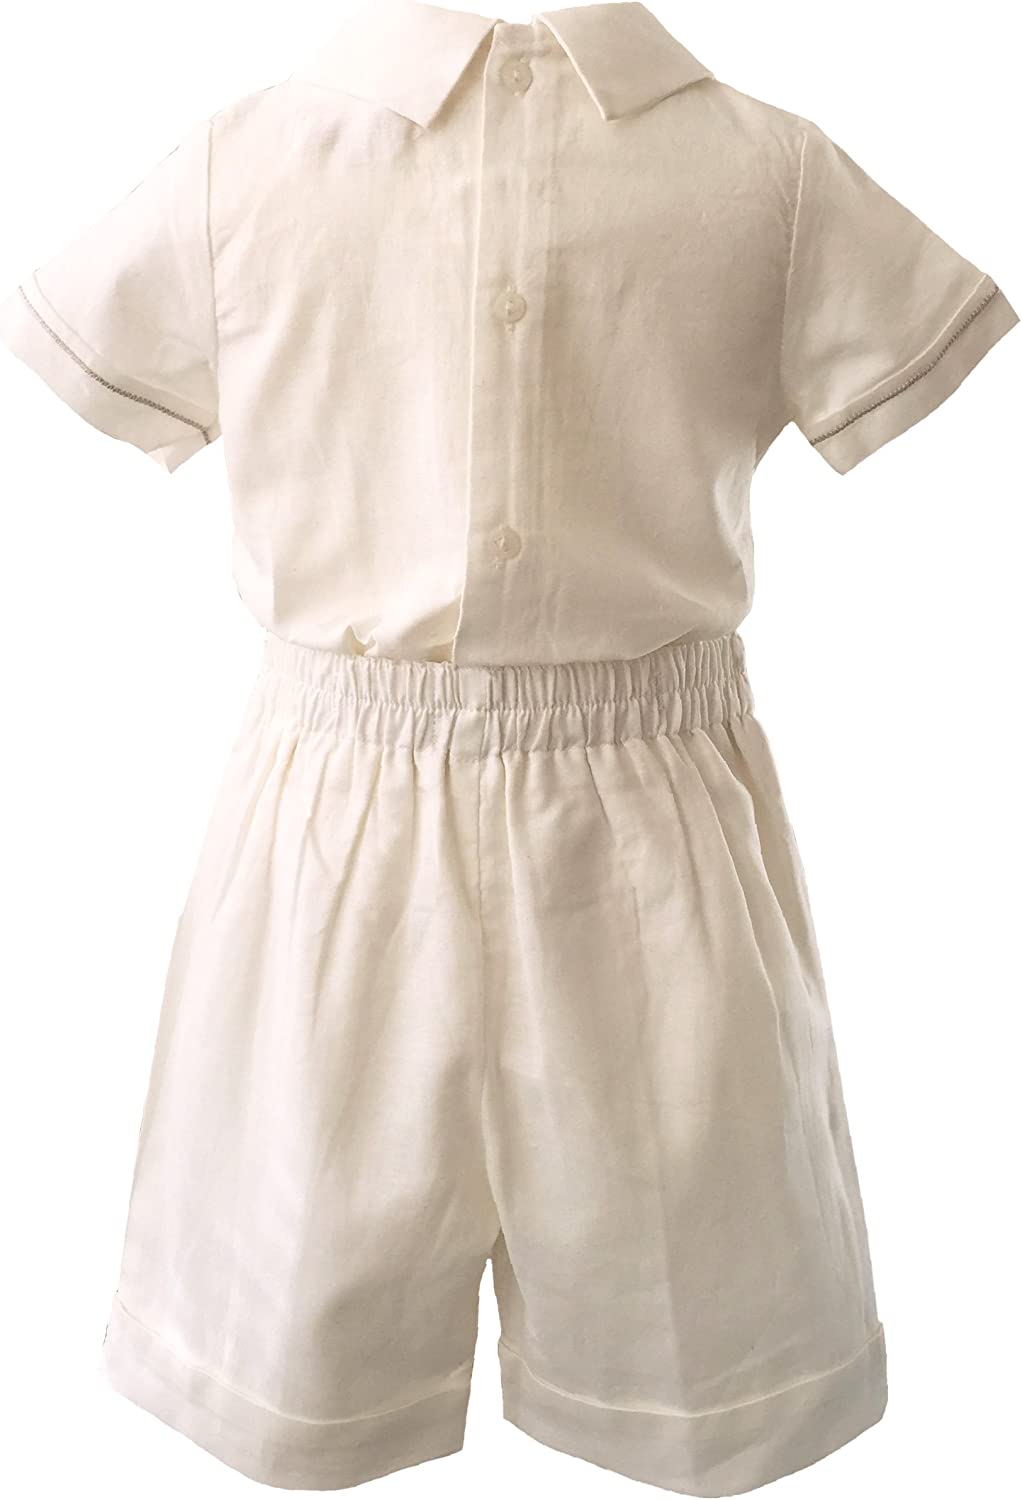 Boys 100/% Linen 3 Piece Set Boys Shorts top and hat Linen Christening Set Ages 0-3 Months to 18-24 Mont